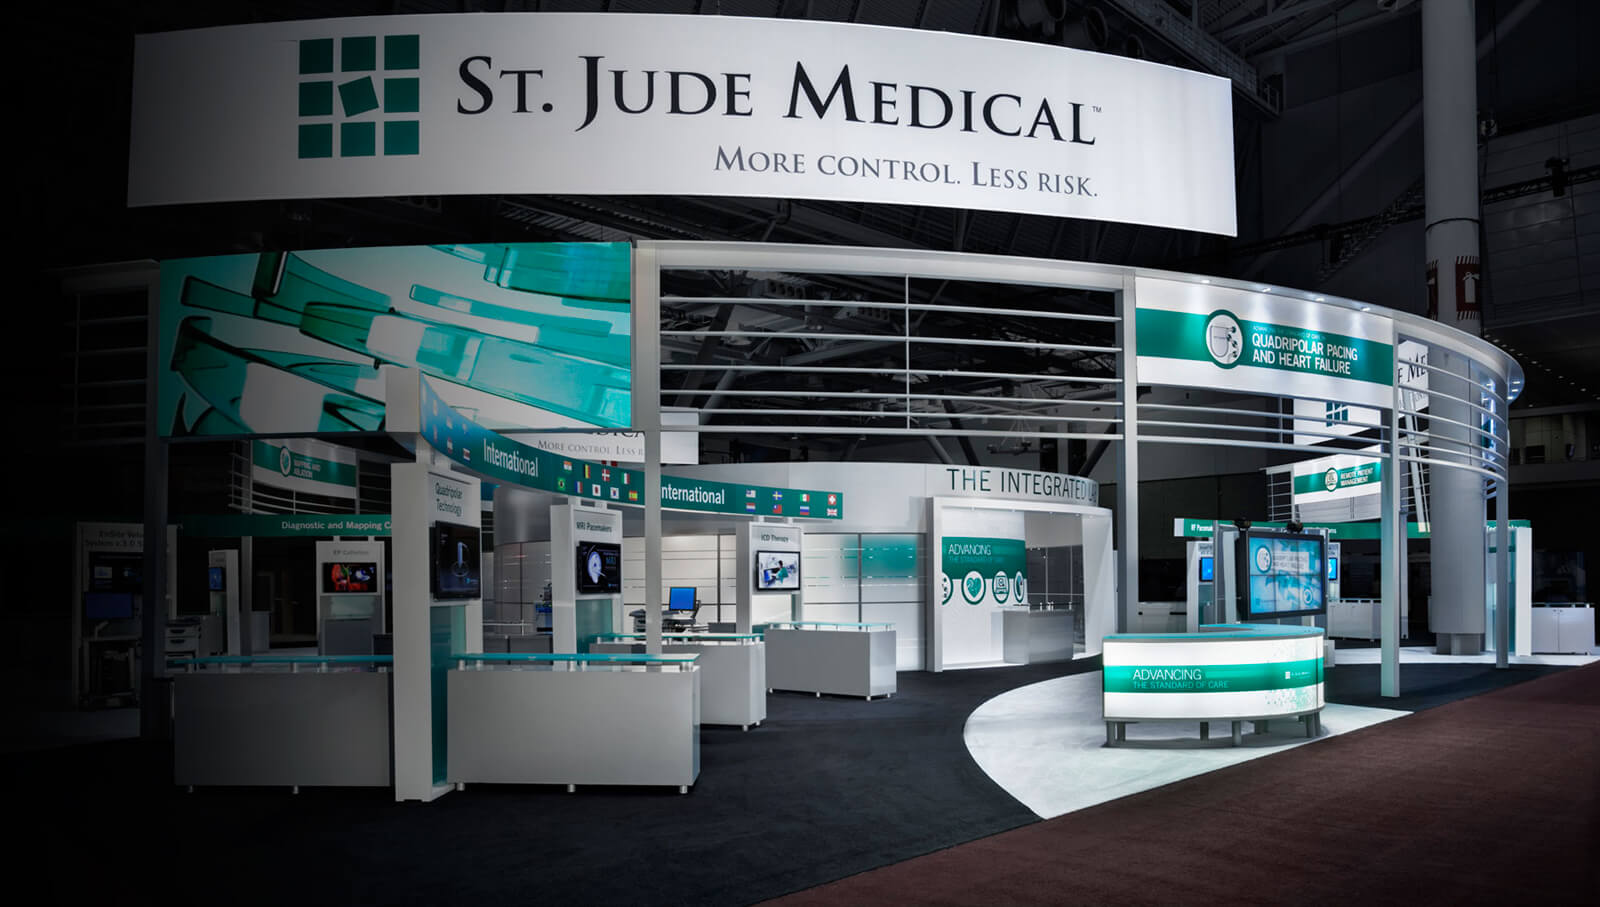 St. Jude Tablet tradeshow booth developed by Stealing Share